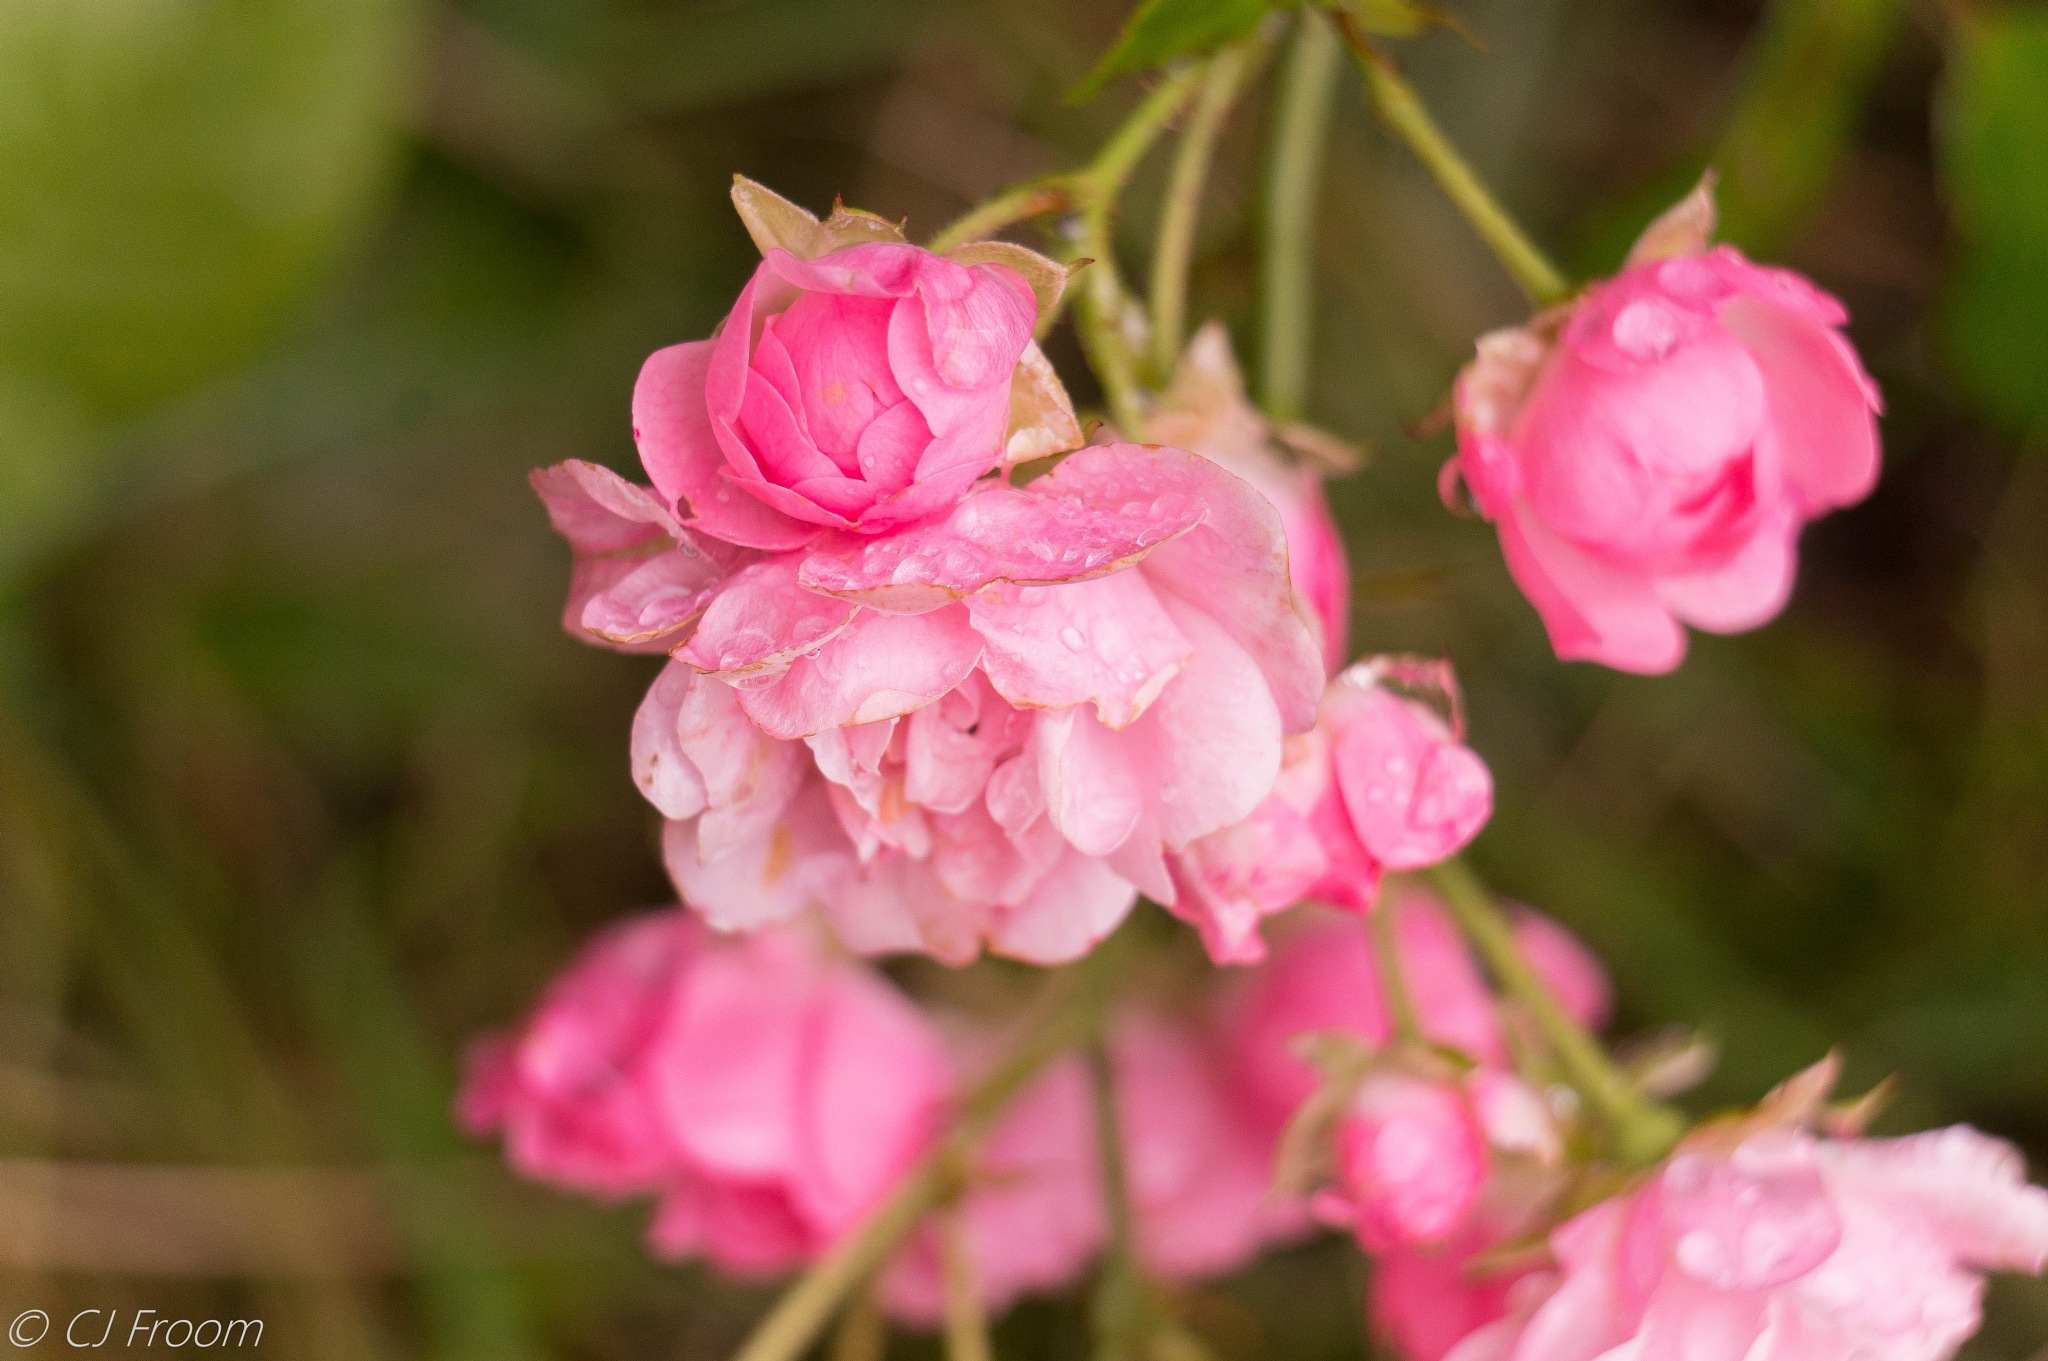 Rain drops on the Roses by Cj Froom